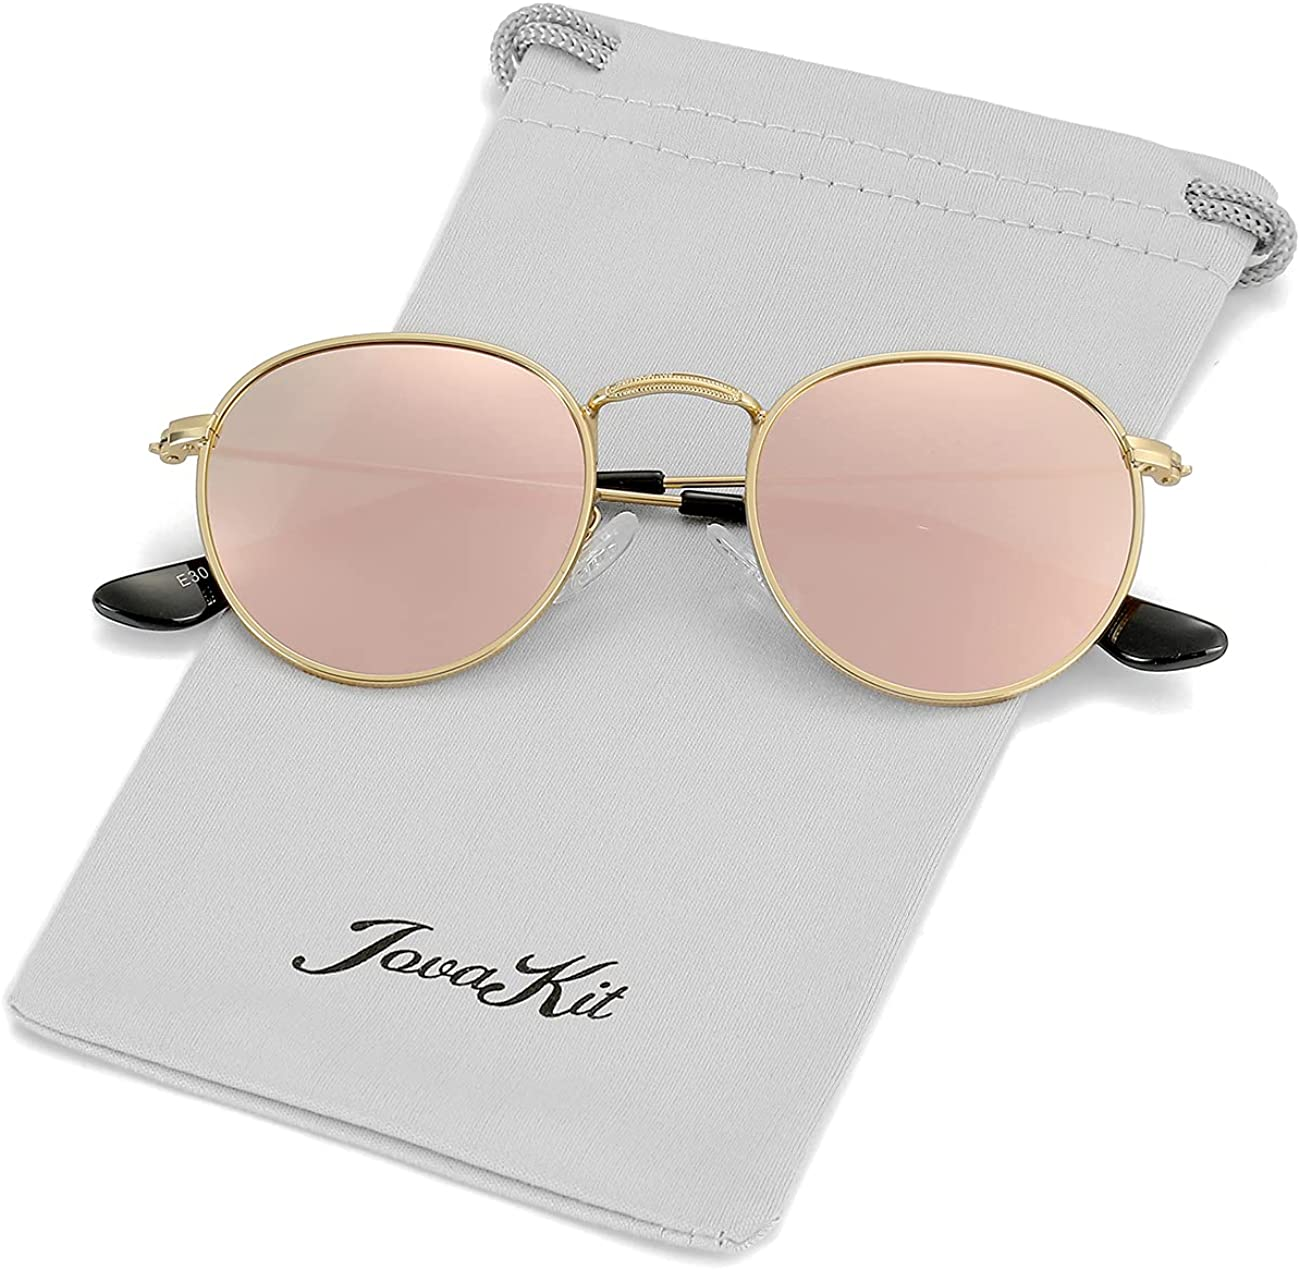 Kids Small Price reduction Round Polarized Sunglasses for Boys Girls Ag and Store Baby